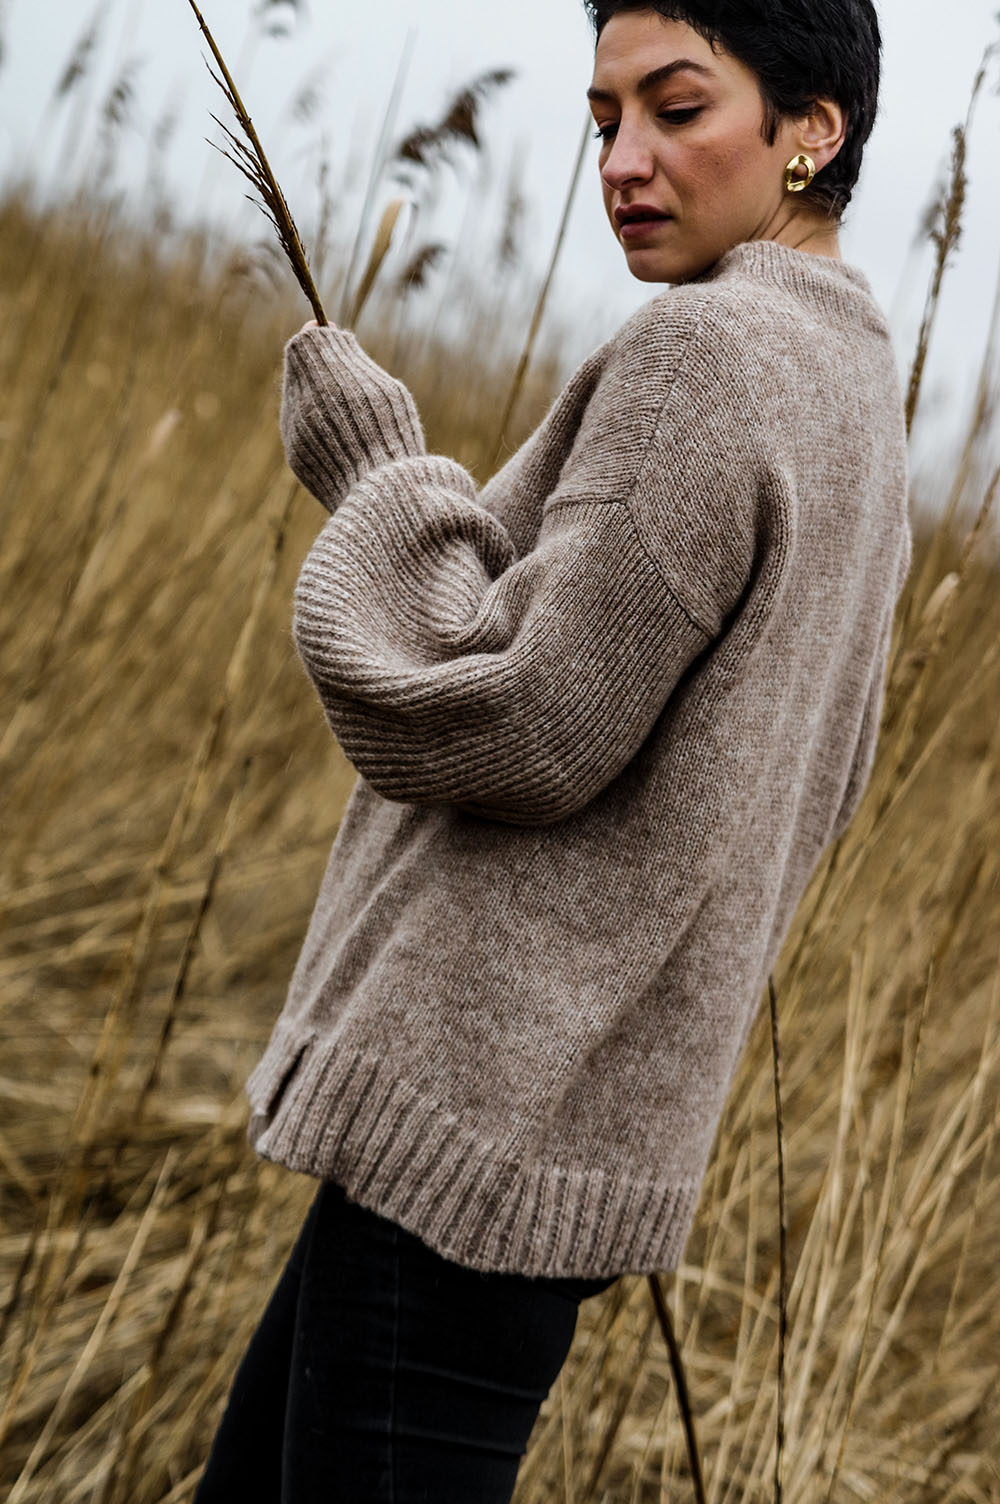 The-one-sustainable-fashion-brand-tou-need-to-add-to-your-wardrobe-sweater-handmade-spring-outfit-eco-friendly-sweater-scandinavian-fashion-hygge-outfit